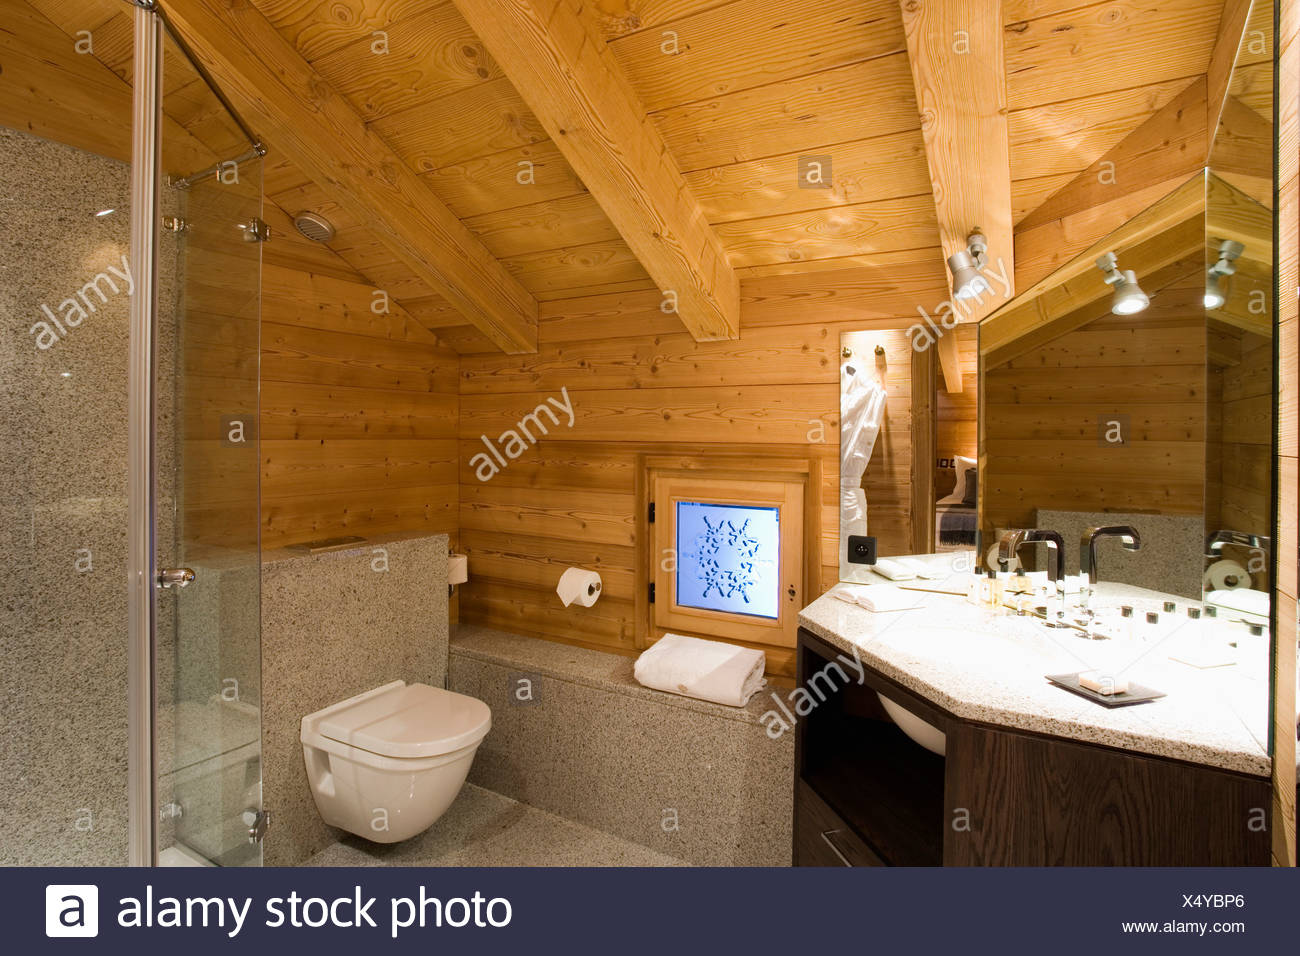 Wooden Ceiling And Walls In Alpine Chalet Bathroom Stock Photo